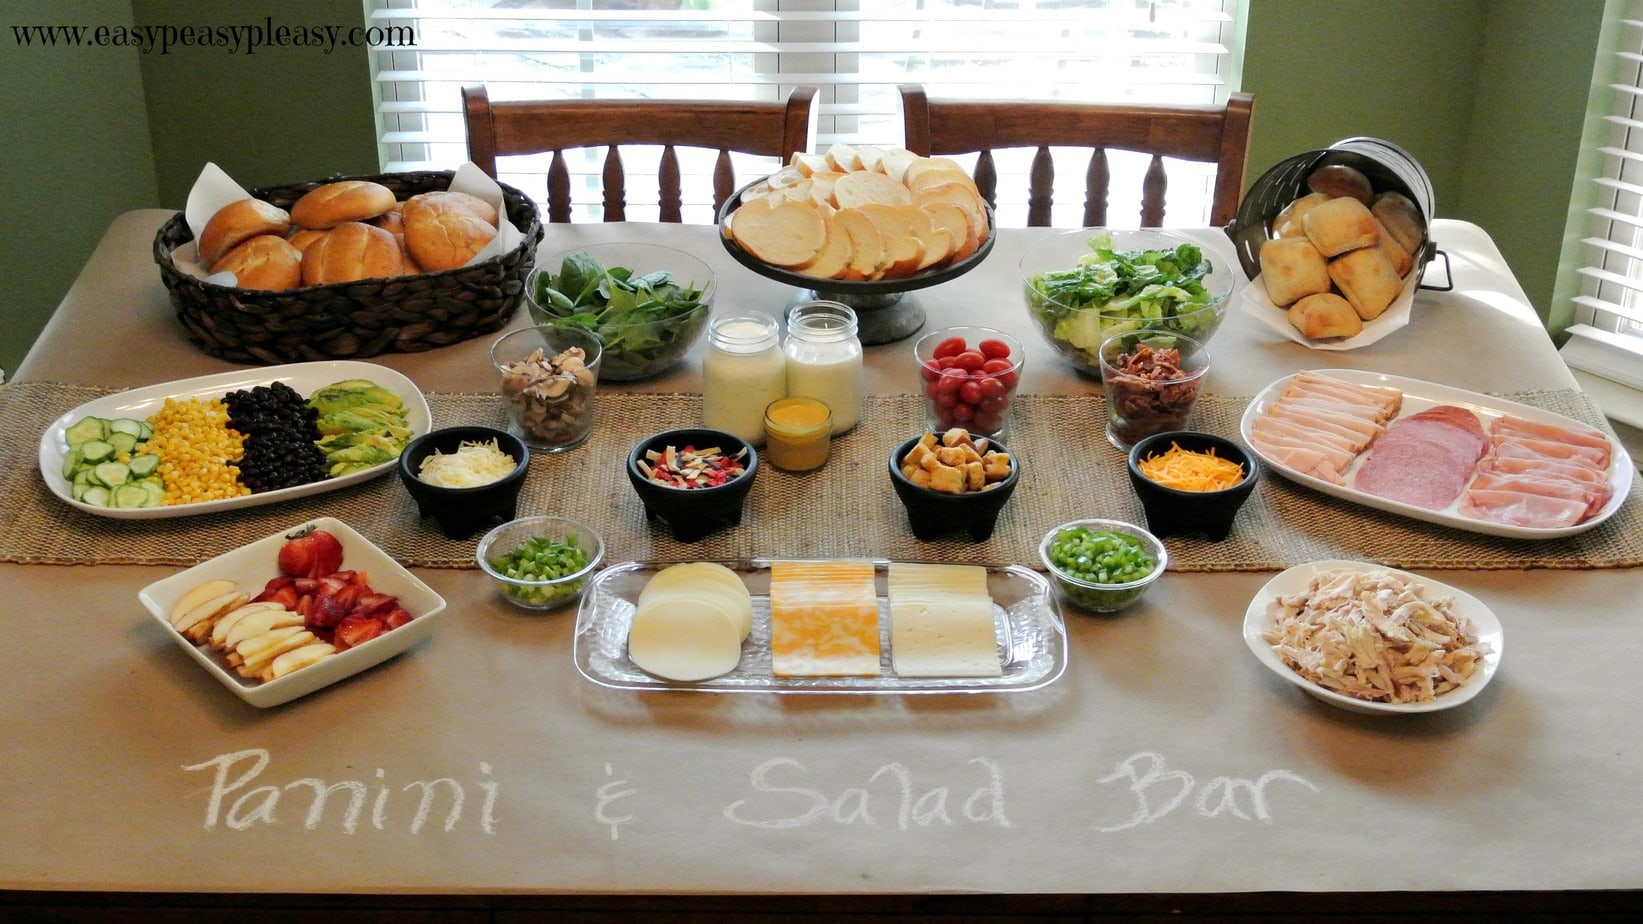 Panini salad bar party food made easy easy peasy pleasy for Food bar ideas for a party